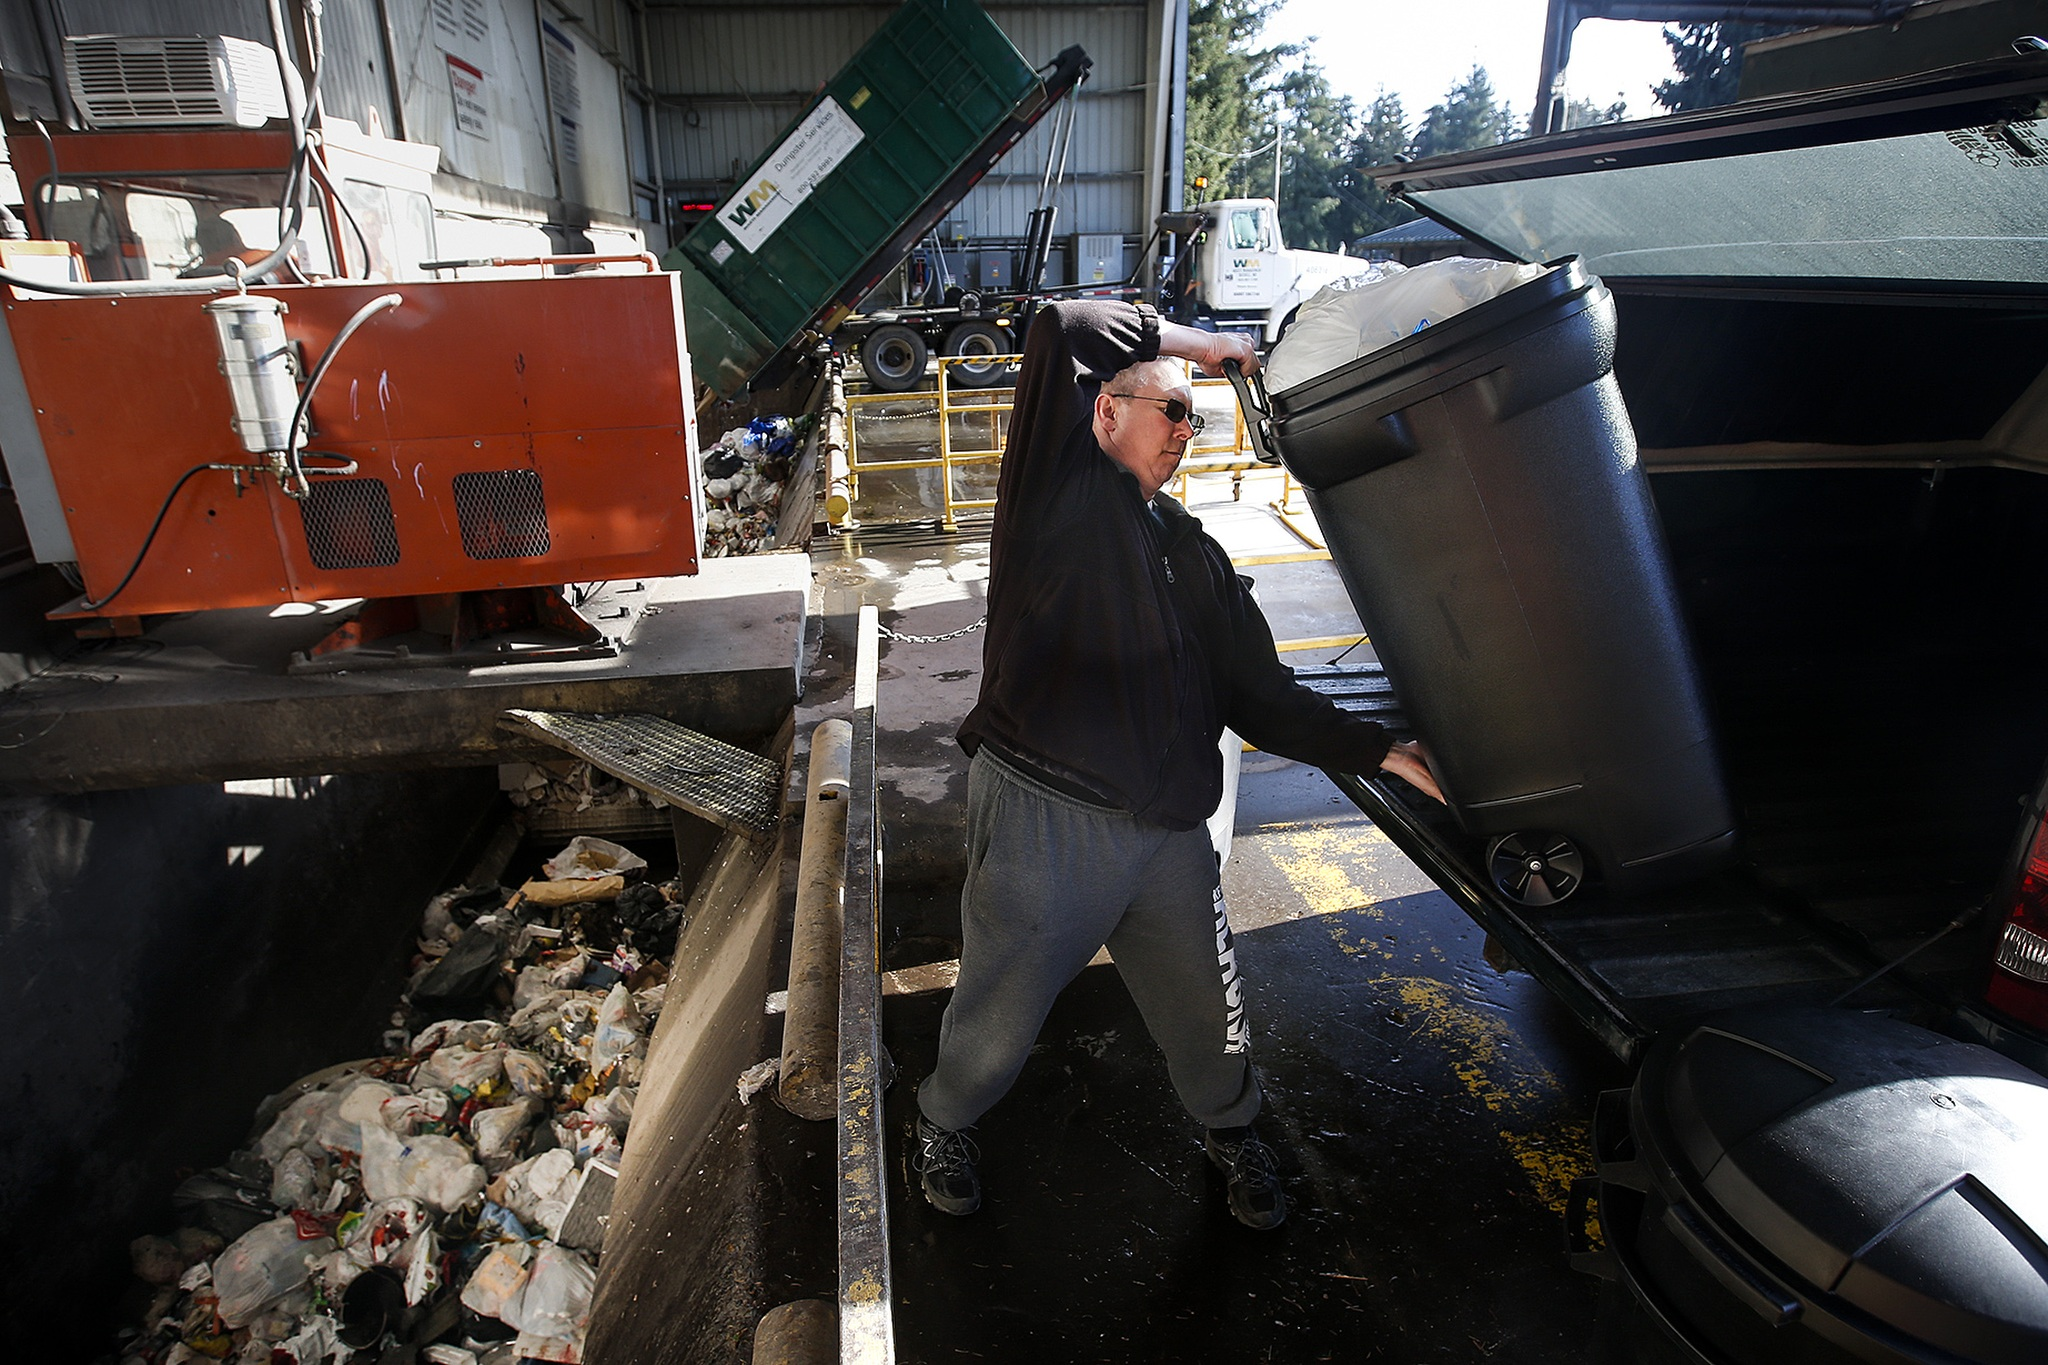 Scott Reed, of Stanwood, hoists a container of garbage out of his truck at the North County Transfer Station in Arlington on Thursday. The station collects, processes and offloads approximately 335 tons of waste each day. (Ian Terry / The Herald)